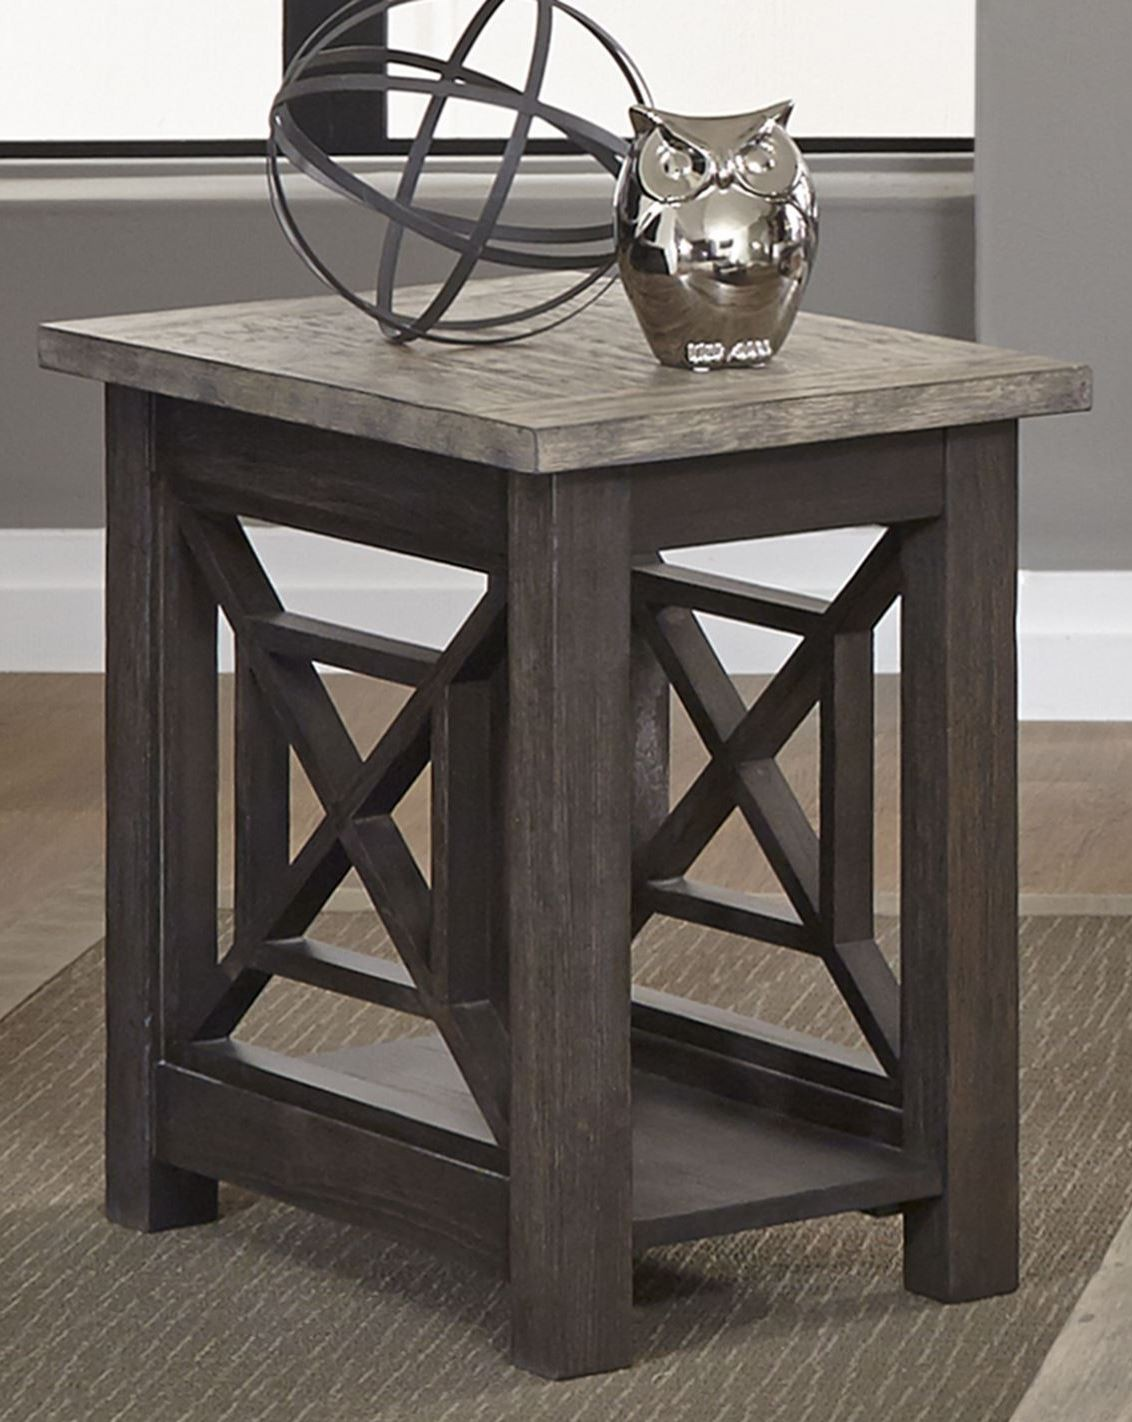 Heatherbrook Charcoal Chair Side Table From Liberty 422